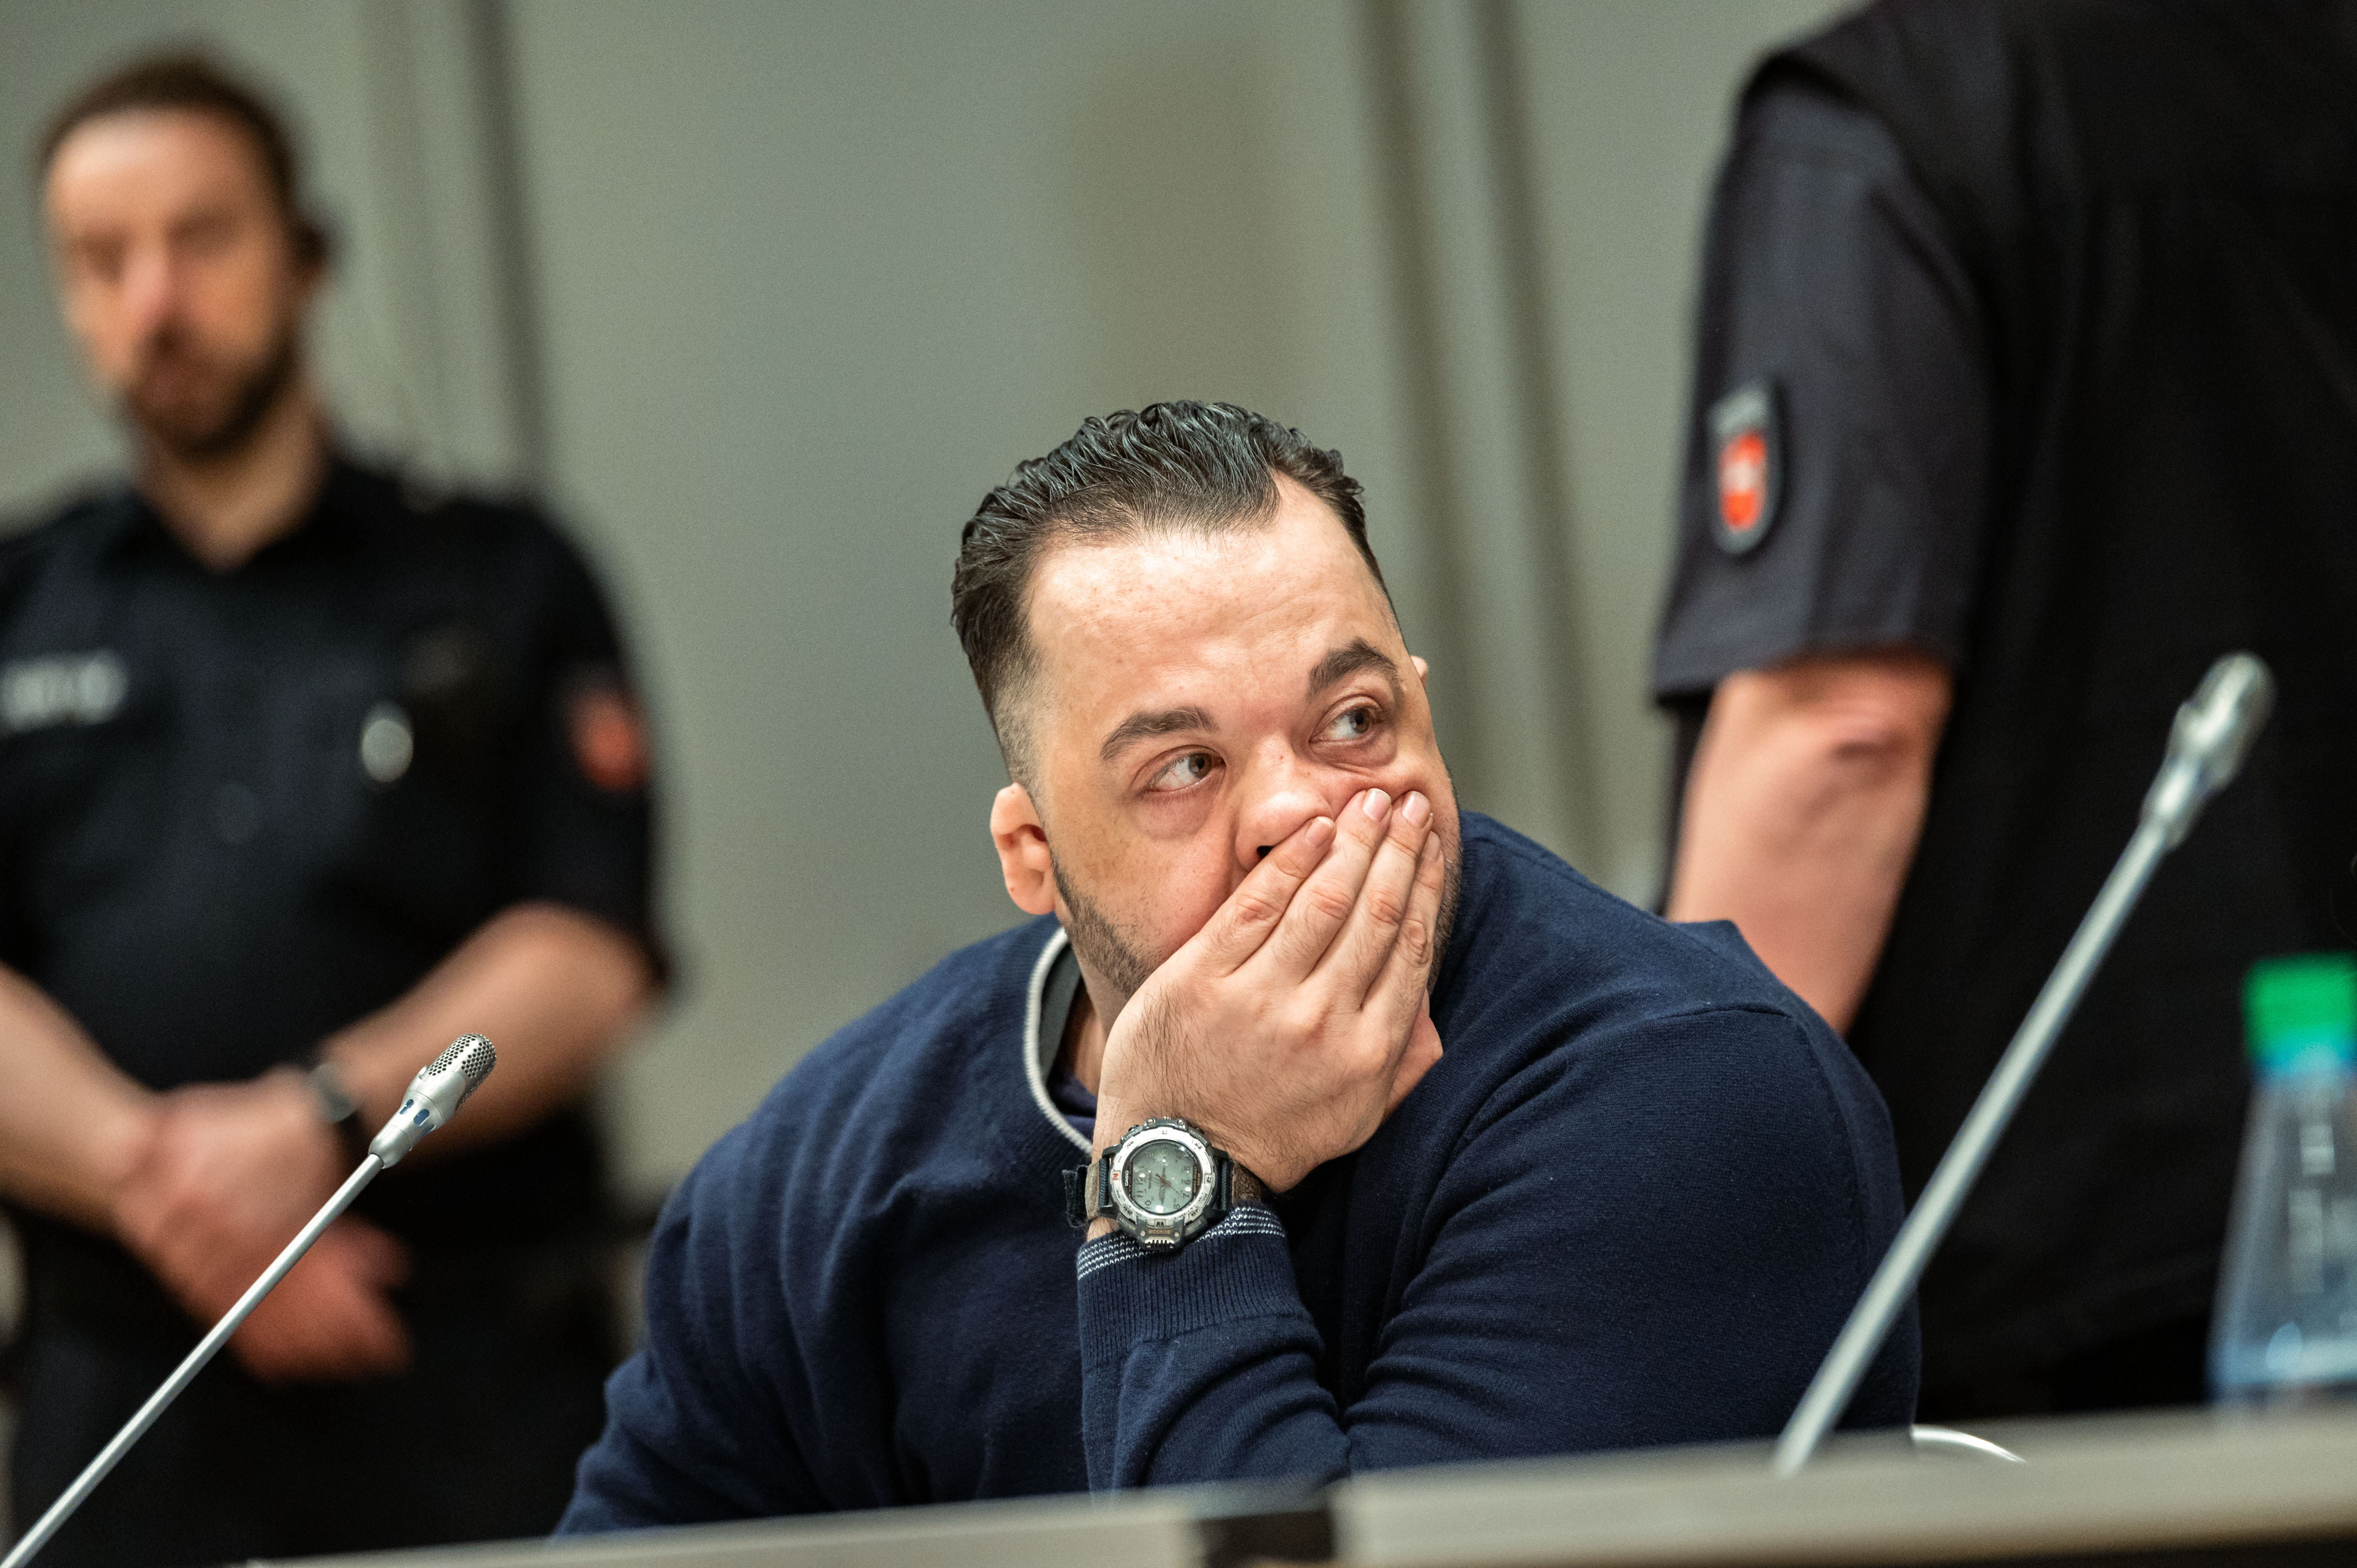 Former nurse Niels Hoegel, accused of killing more than 100 patients in his care, waits at court for the continuation of his trial in Oldenburg, northern Germany, on June 5, 2019.